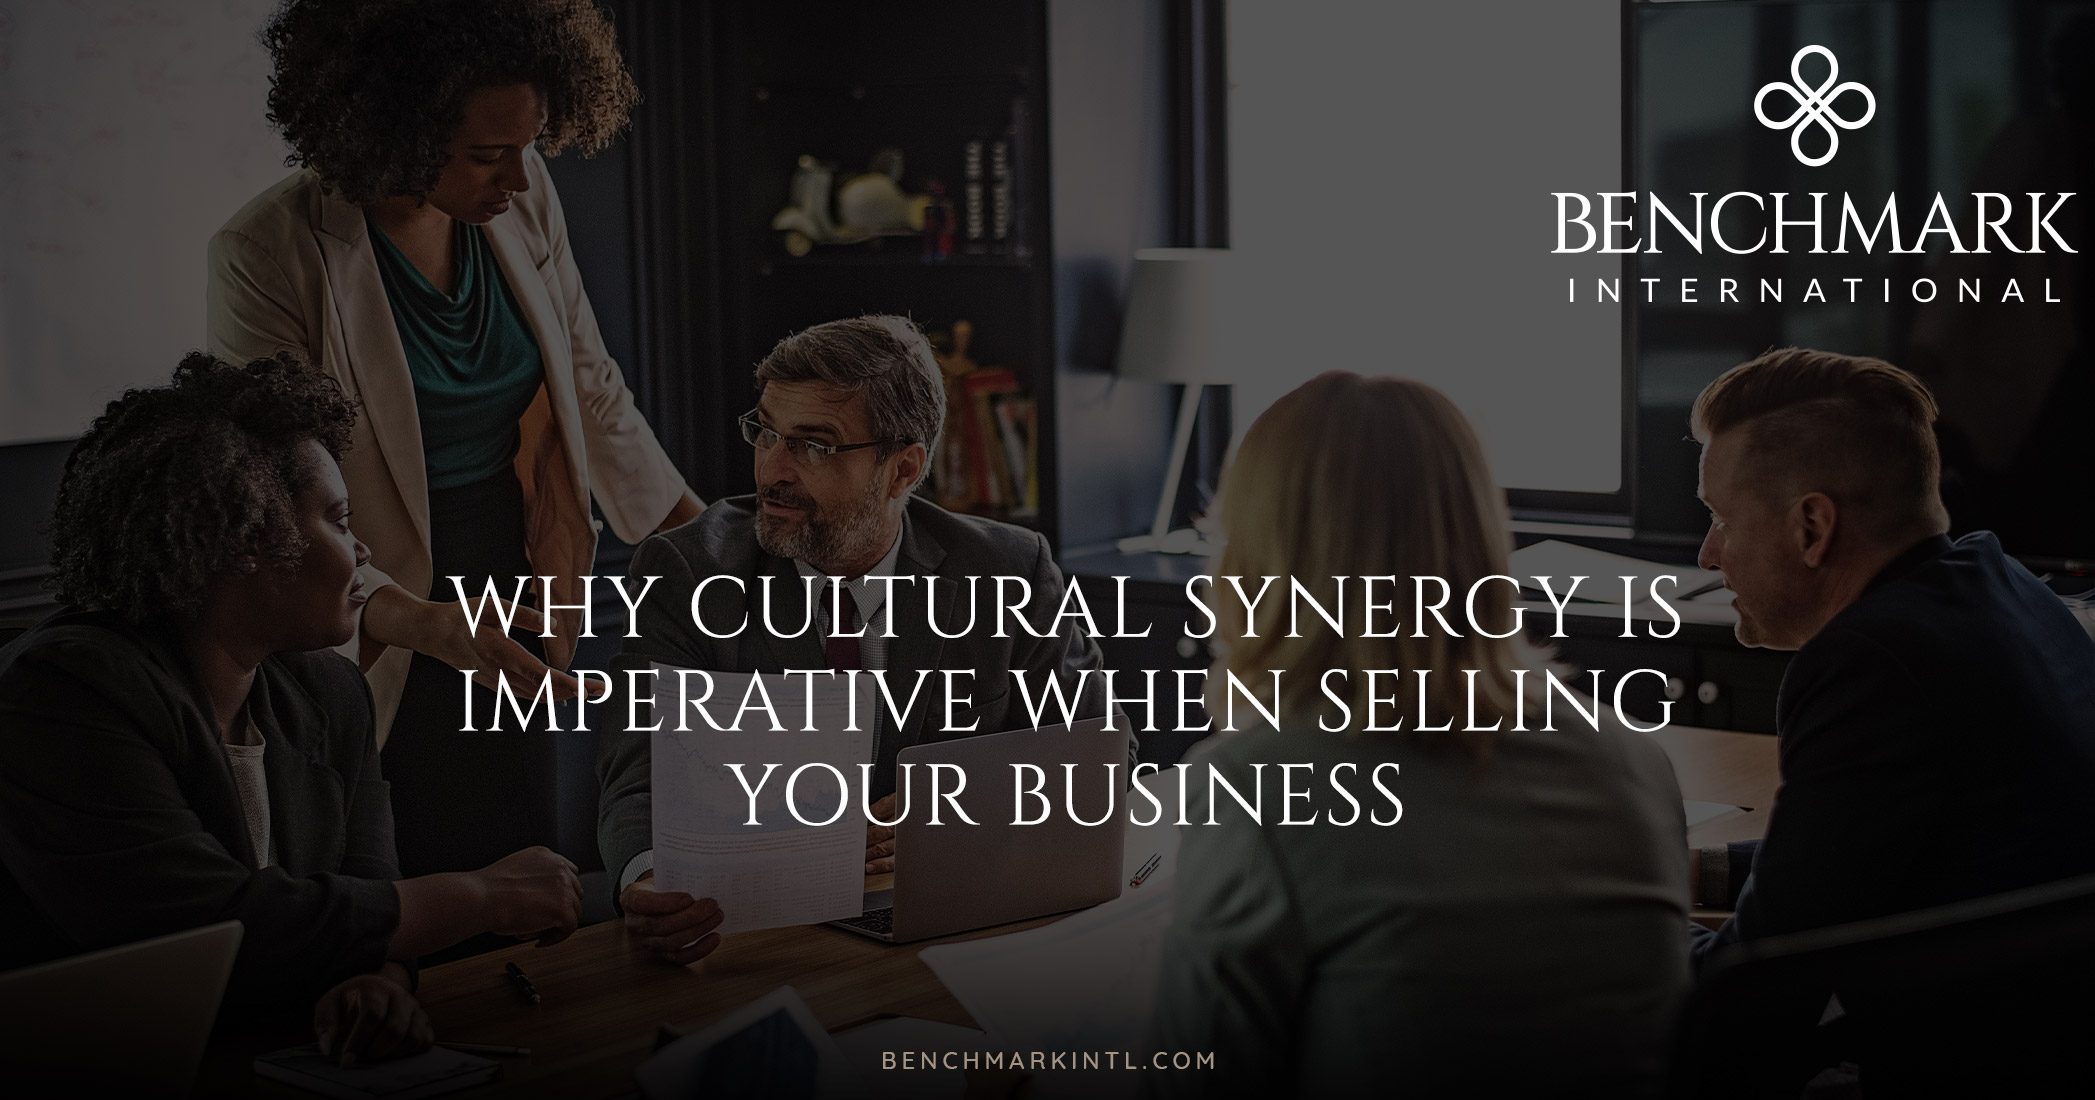 Why Cultural Synergy Is Imperative When Selling Your Business